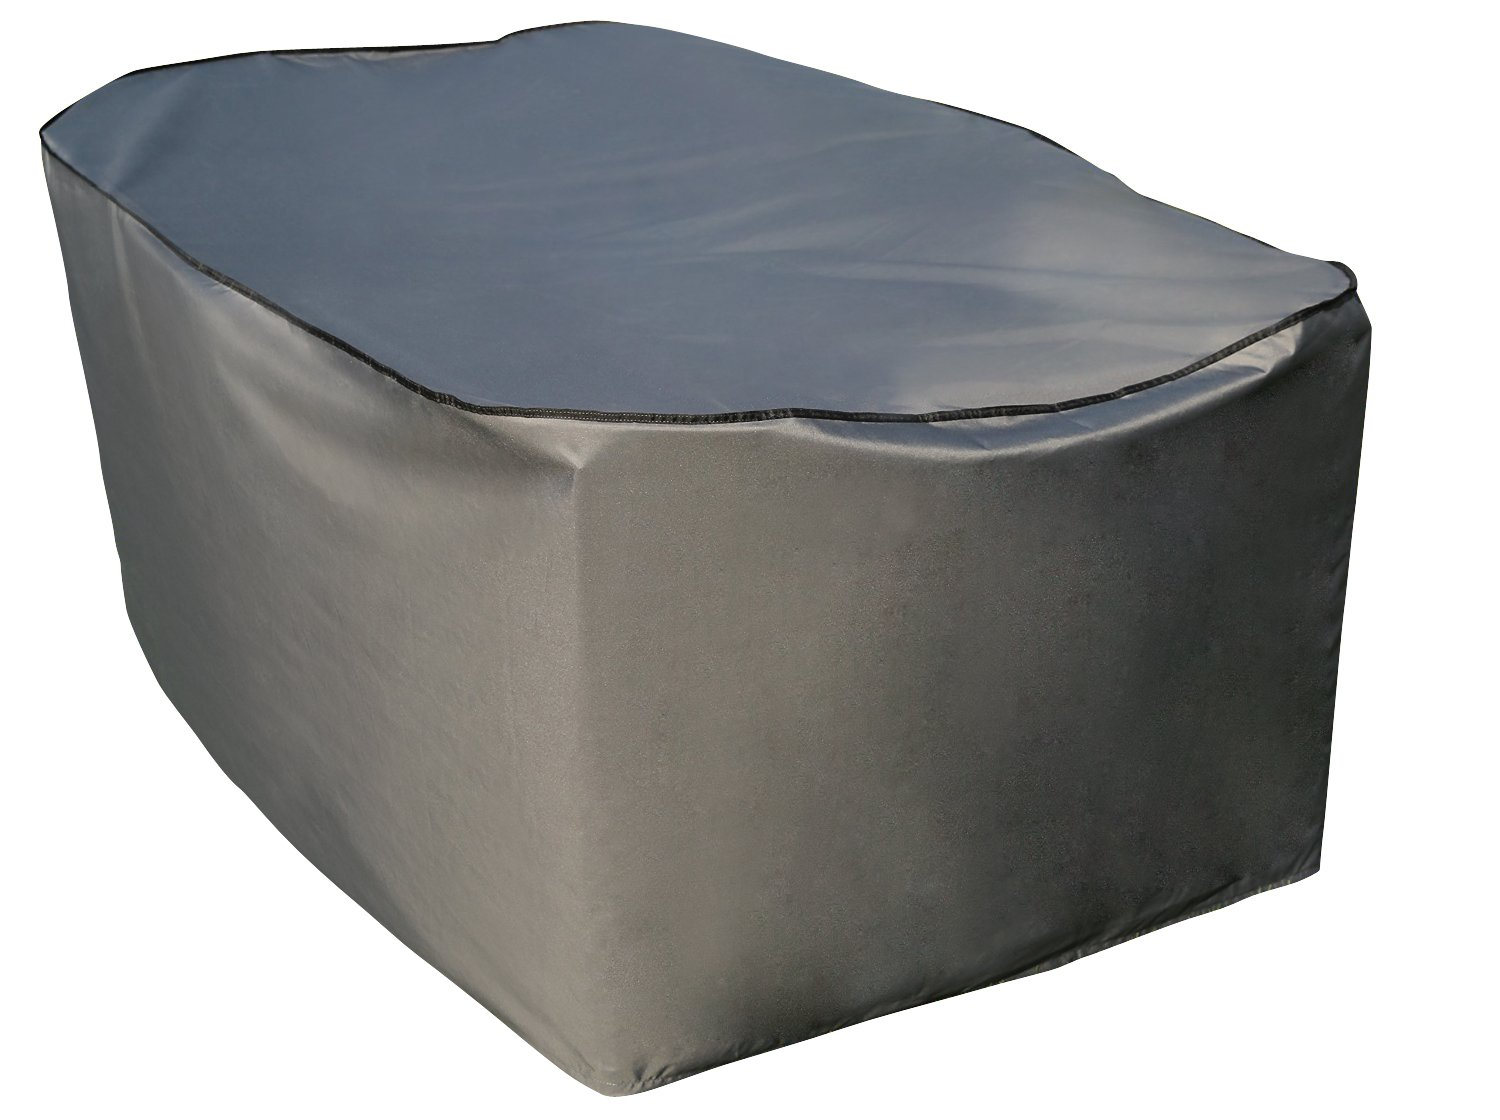 Protective Cover for Rectangular Table Set | Grey | 234 x 153 x 90 cm (L x W x H) | Water Resistant | SORARA | Polyester & PU Coating (UV 50+)| Strong & Durable | Premium | for Patio Outdoor Garden Furniture